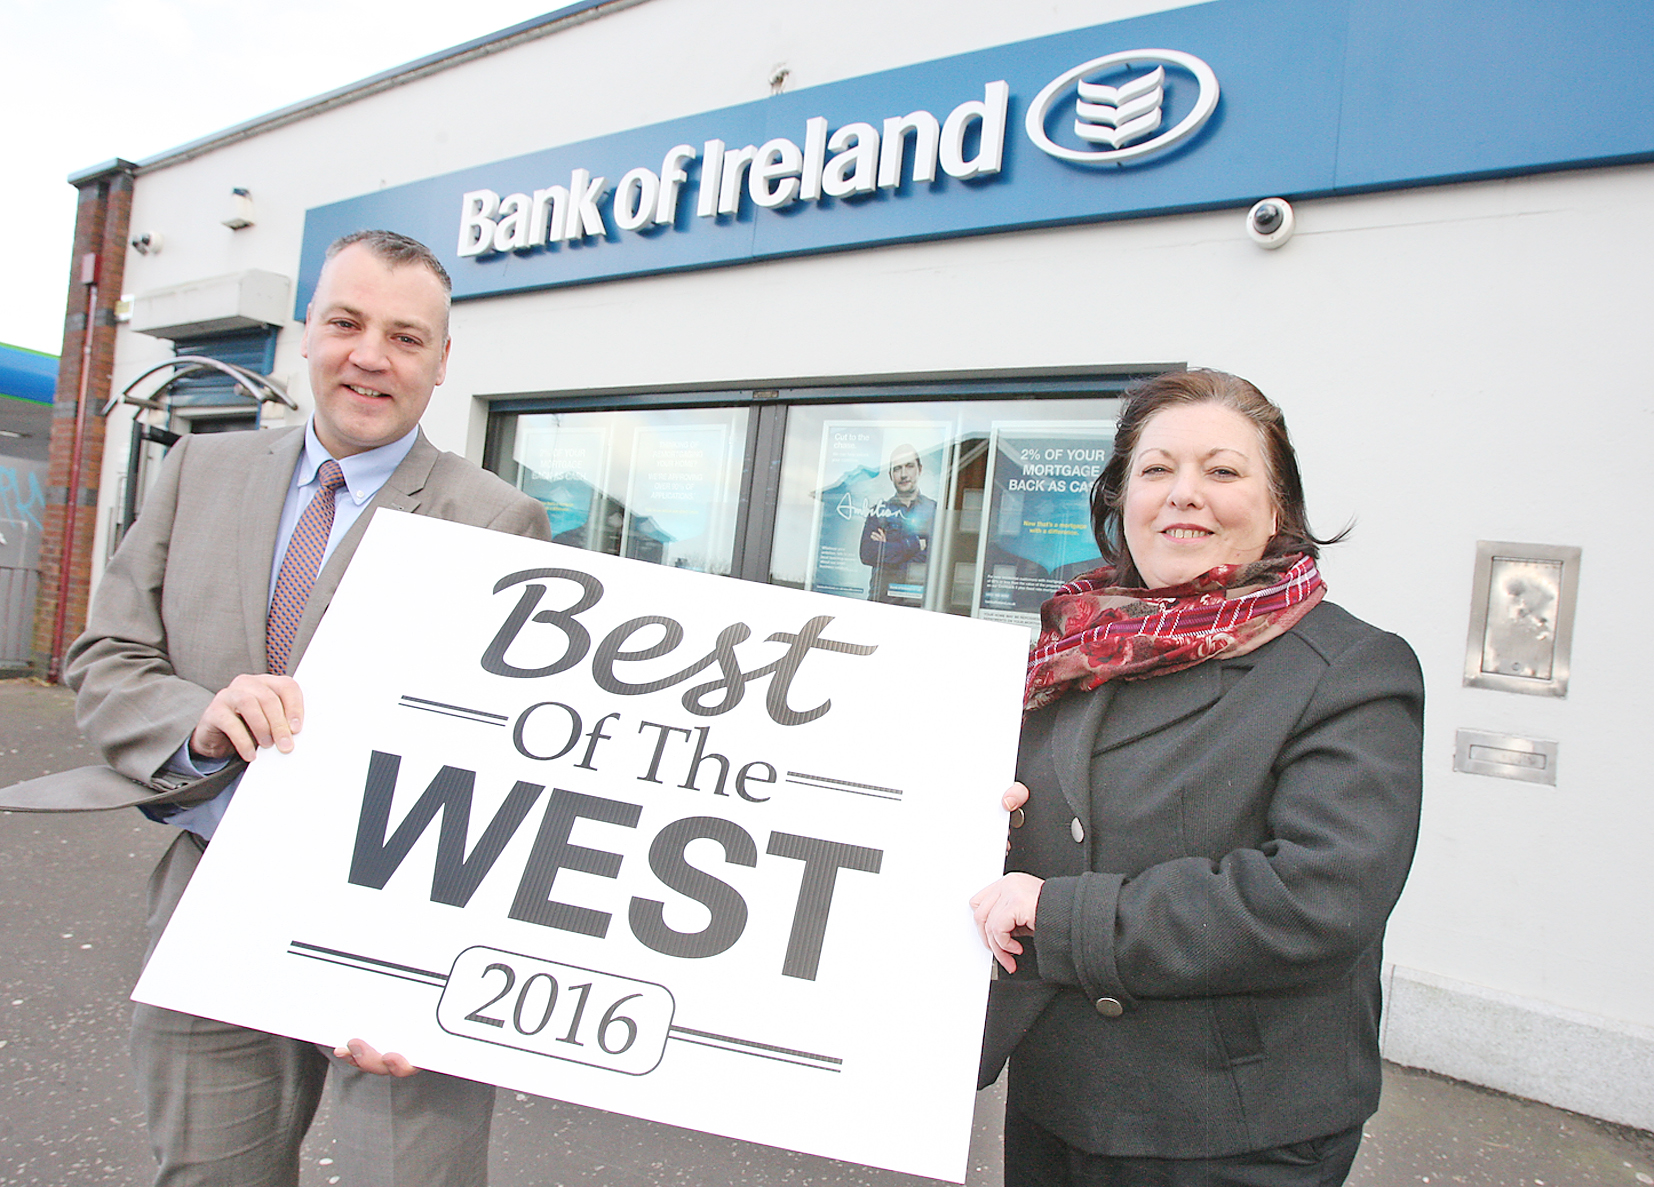 Best of the west bank of ireland 112mj16